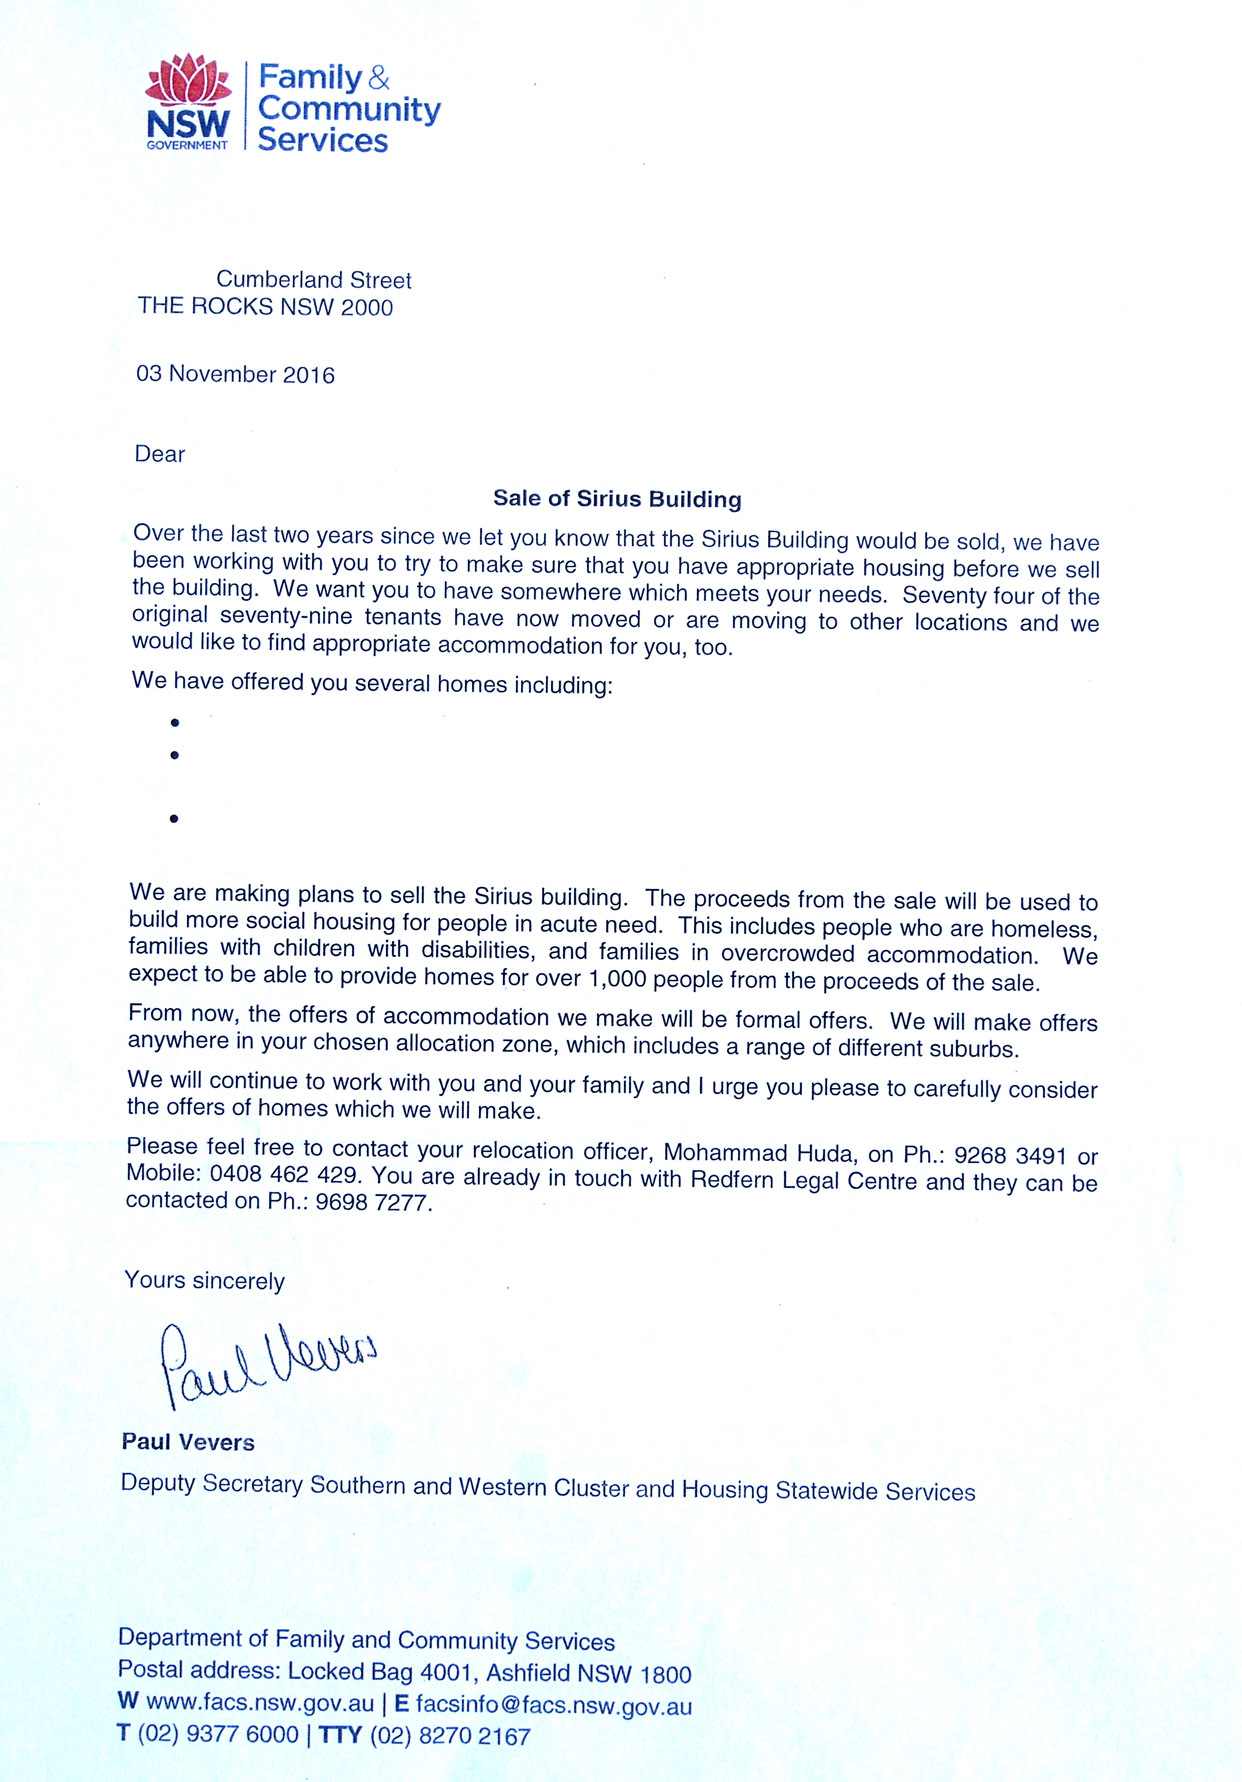 Family & Community Servcies Letter to Residents - 20161103